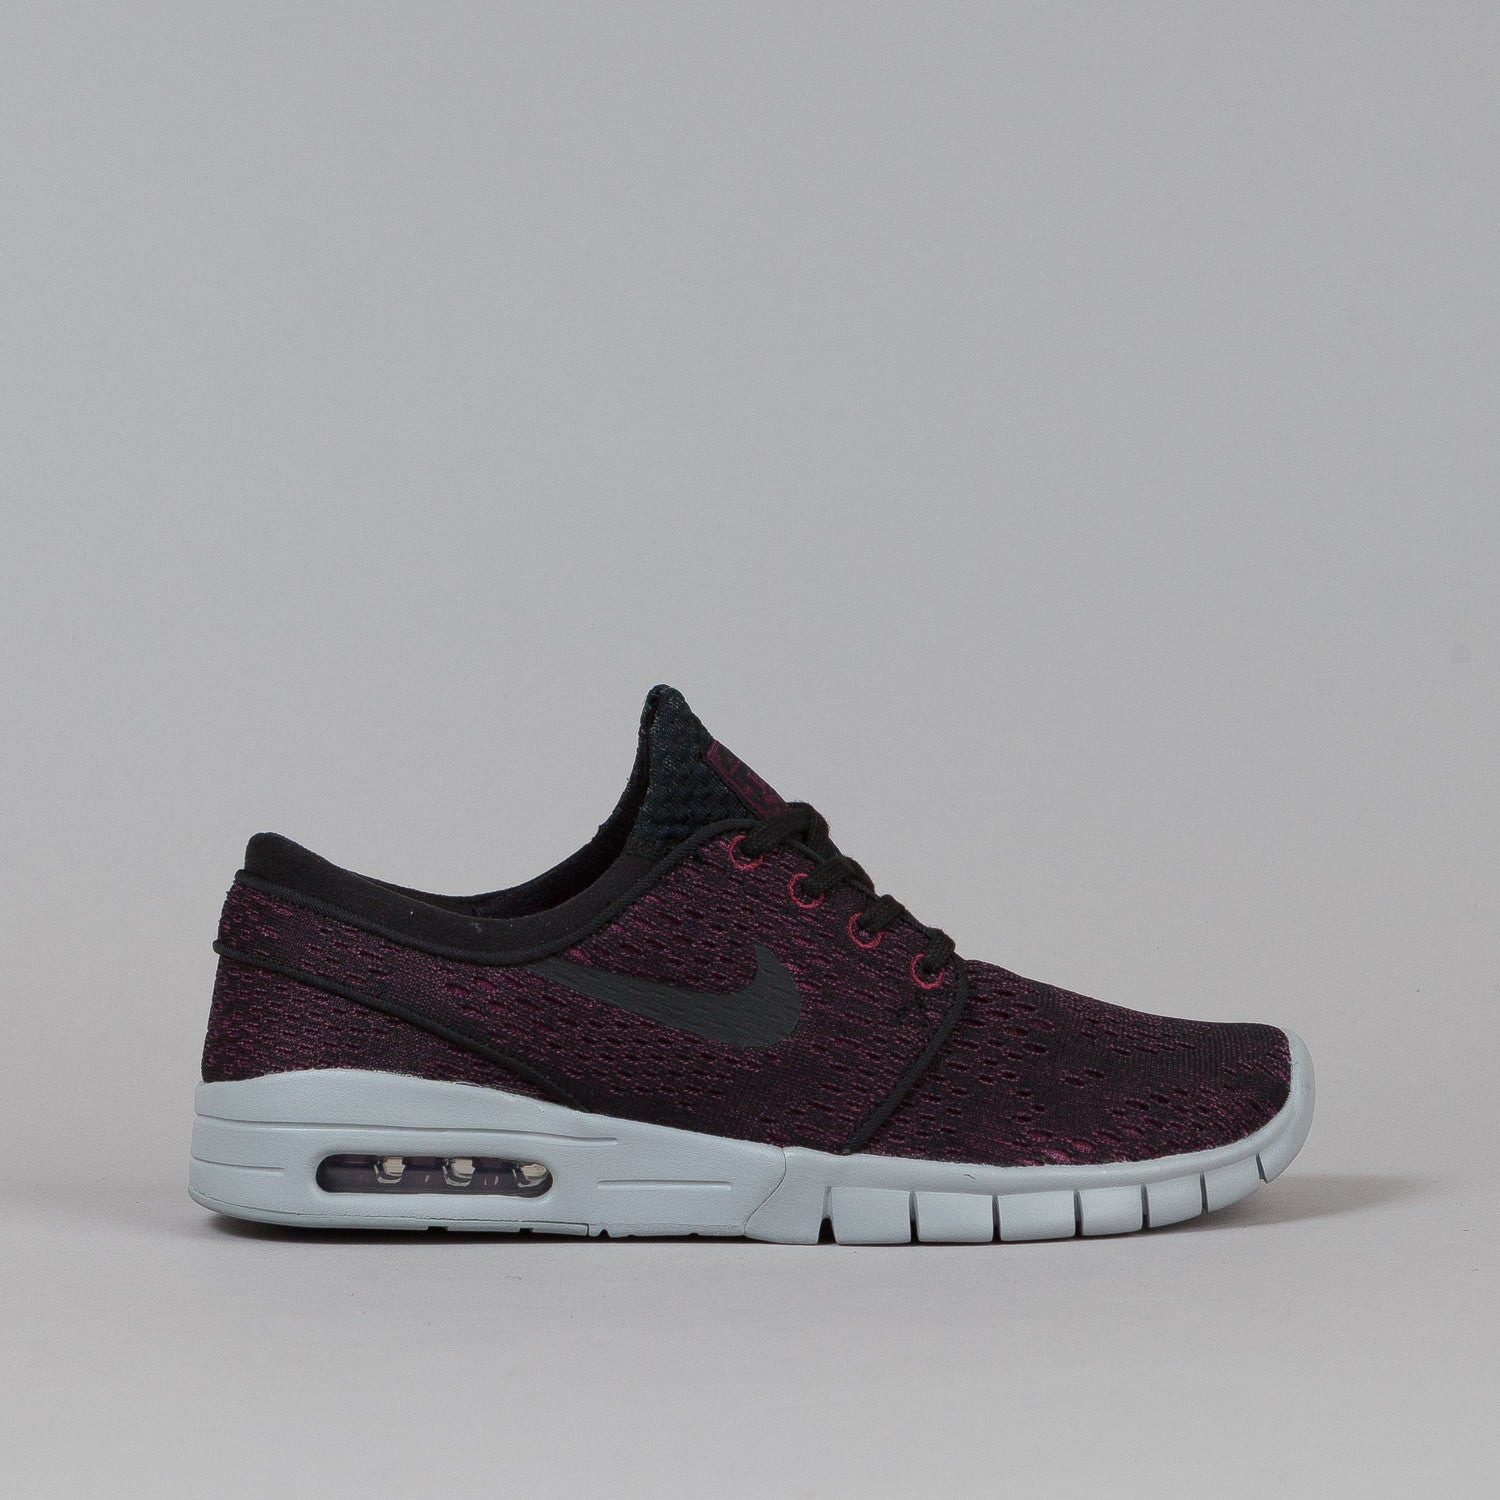 nike sb stefan janoski max shoes villain red black black wolf gr flatspot. Black Bedroom Furniture Sets. Home Design Ideas